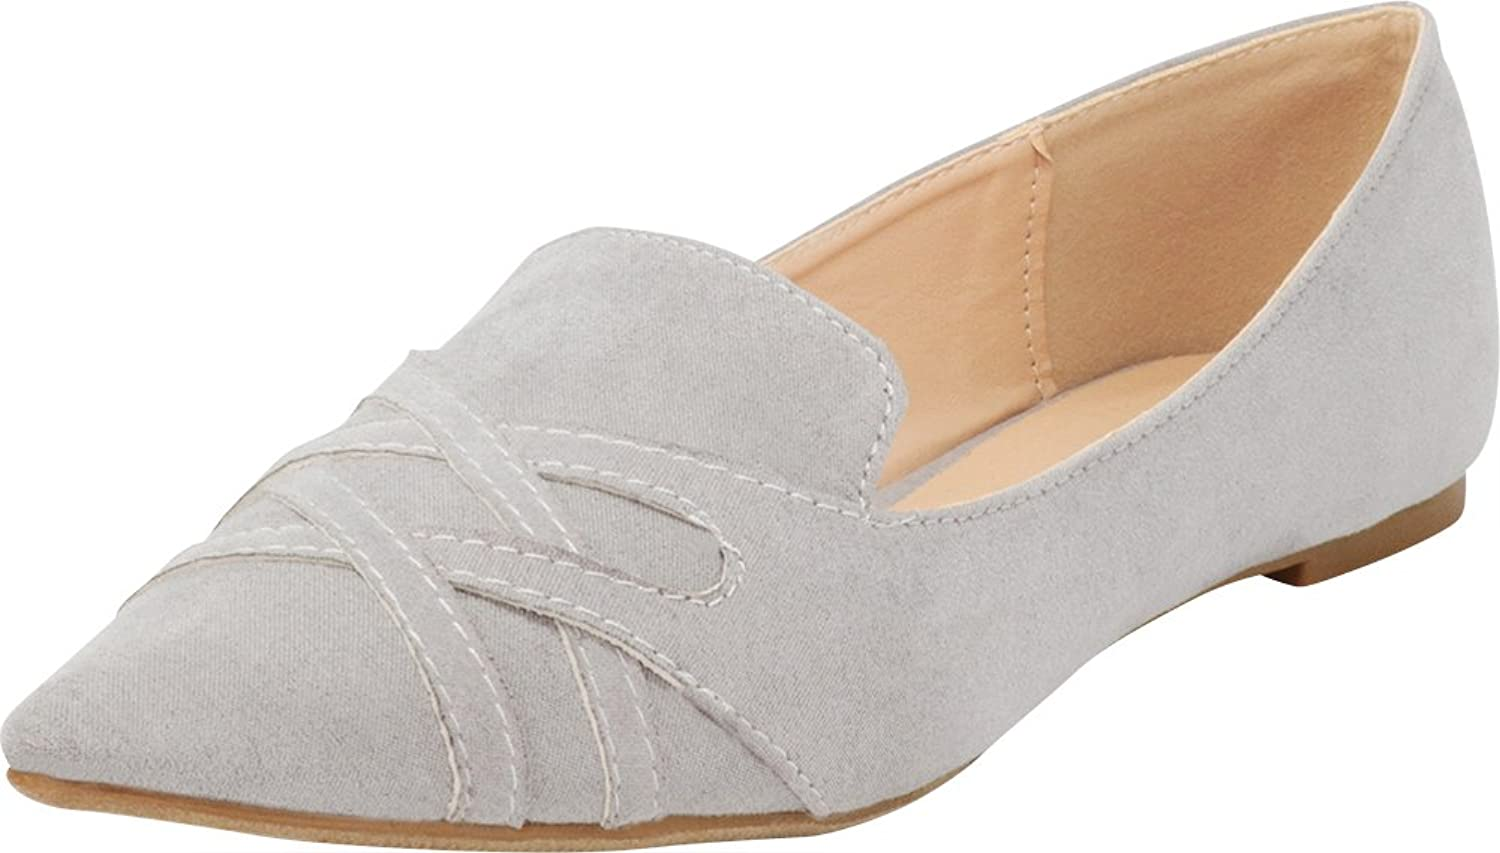 Cambridge Select Women's Closed Pointed Toe Driving Smoking Slip-On Loafer Flat